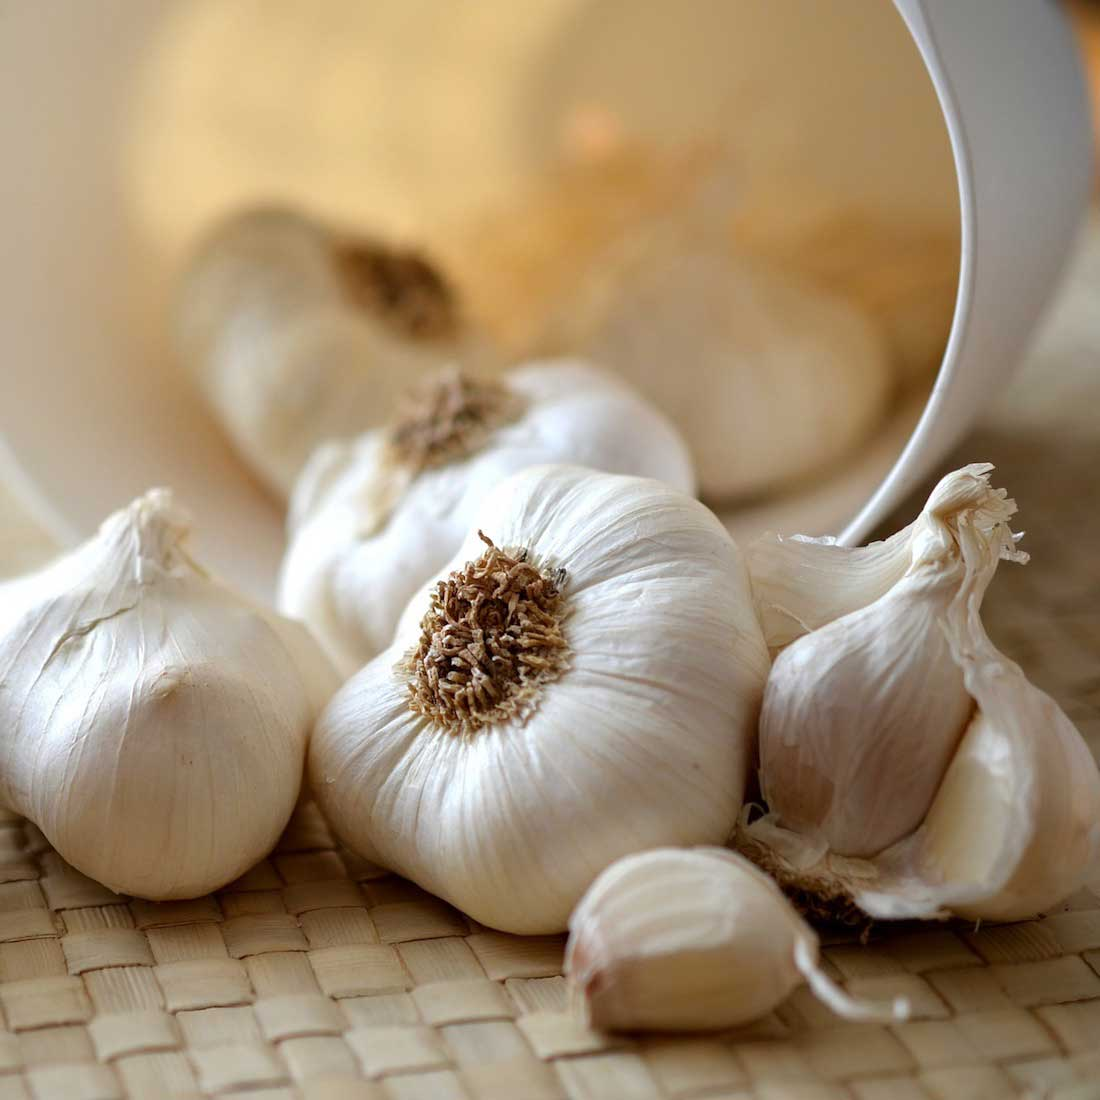 5 Health Benefits of Garlic